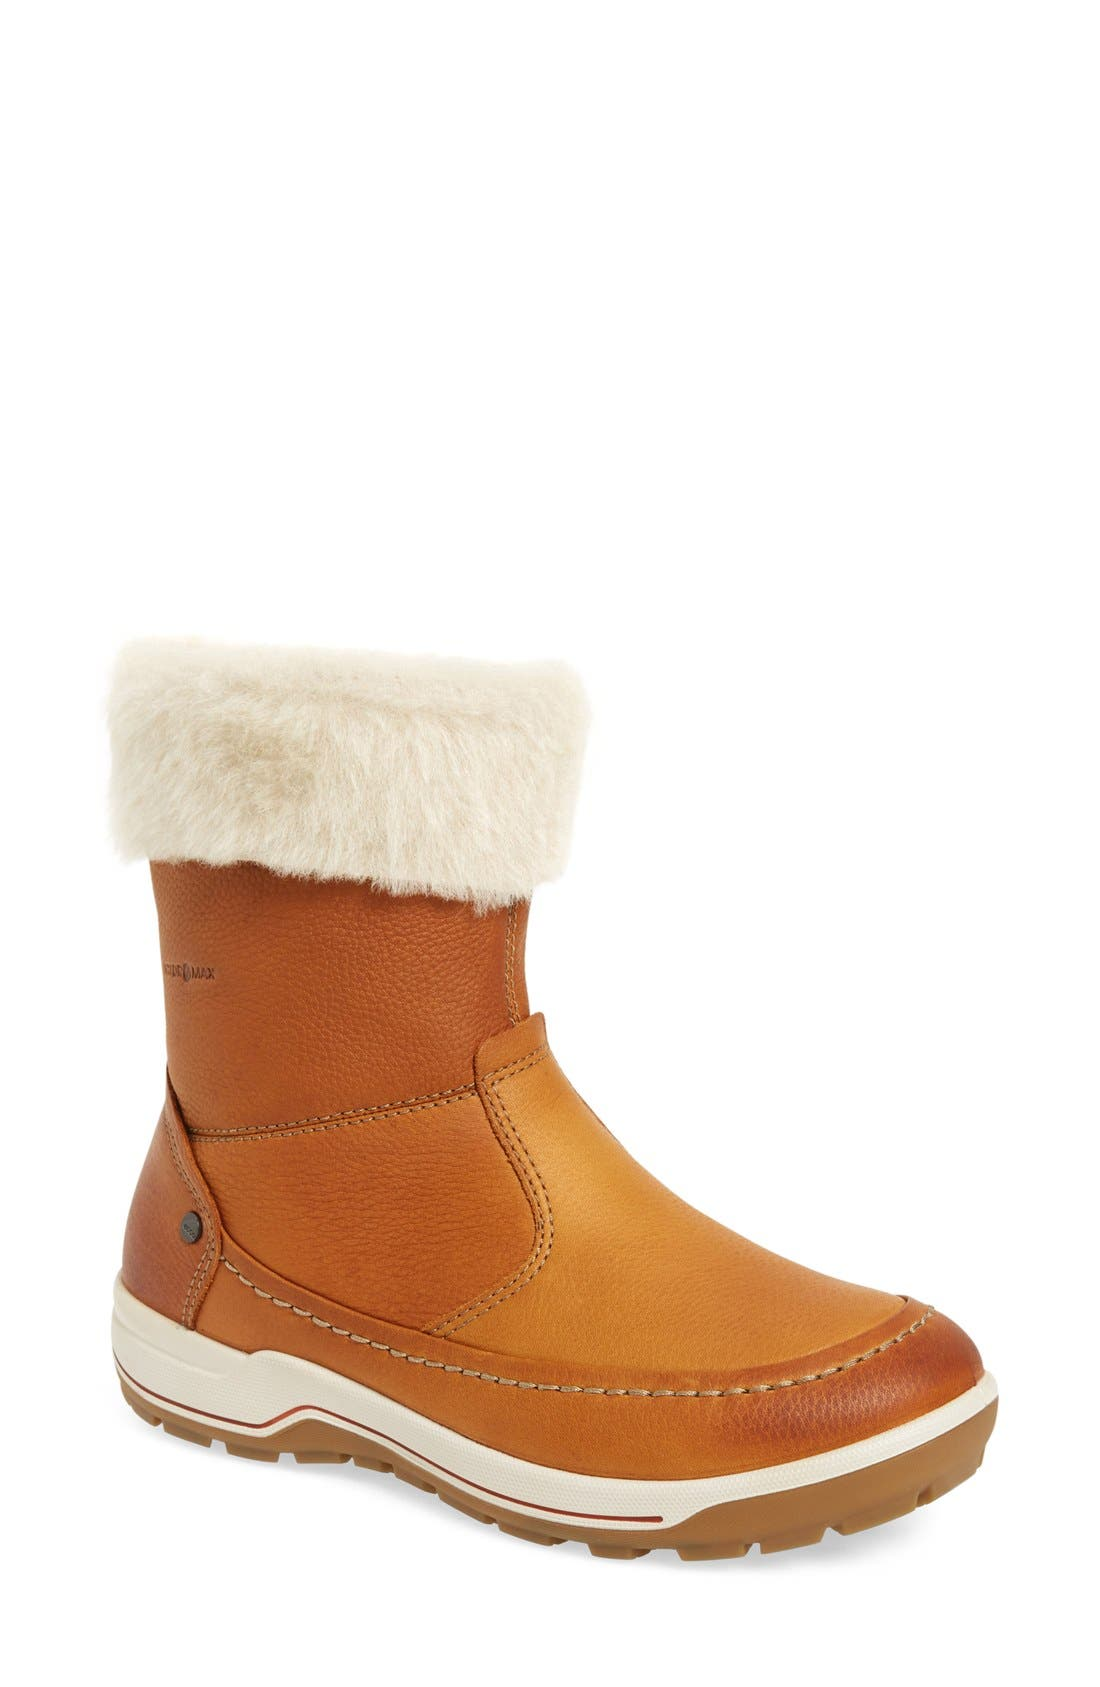 Trace Water Resistant Bootie,                             Main thumbnail 1, color,                             249